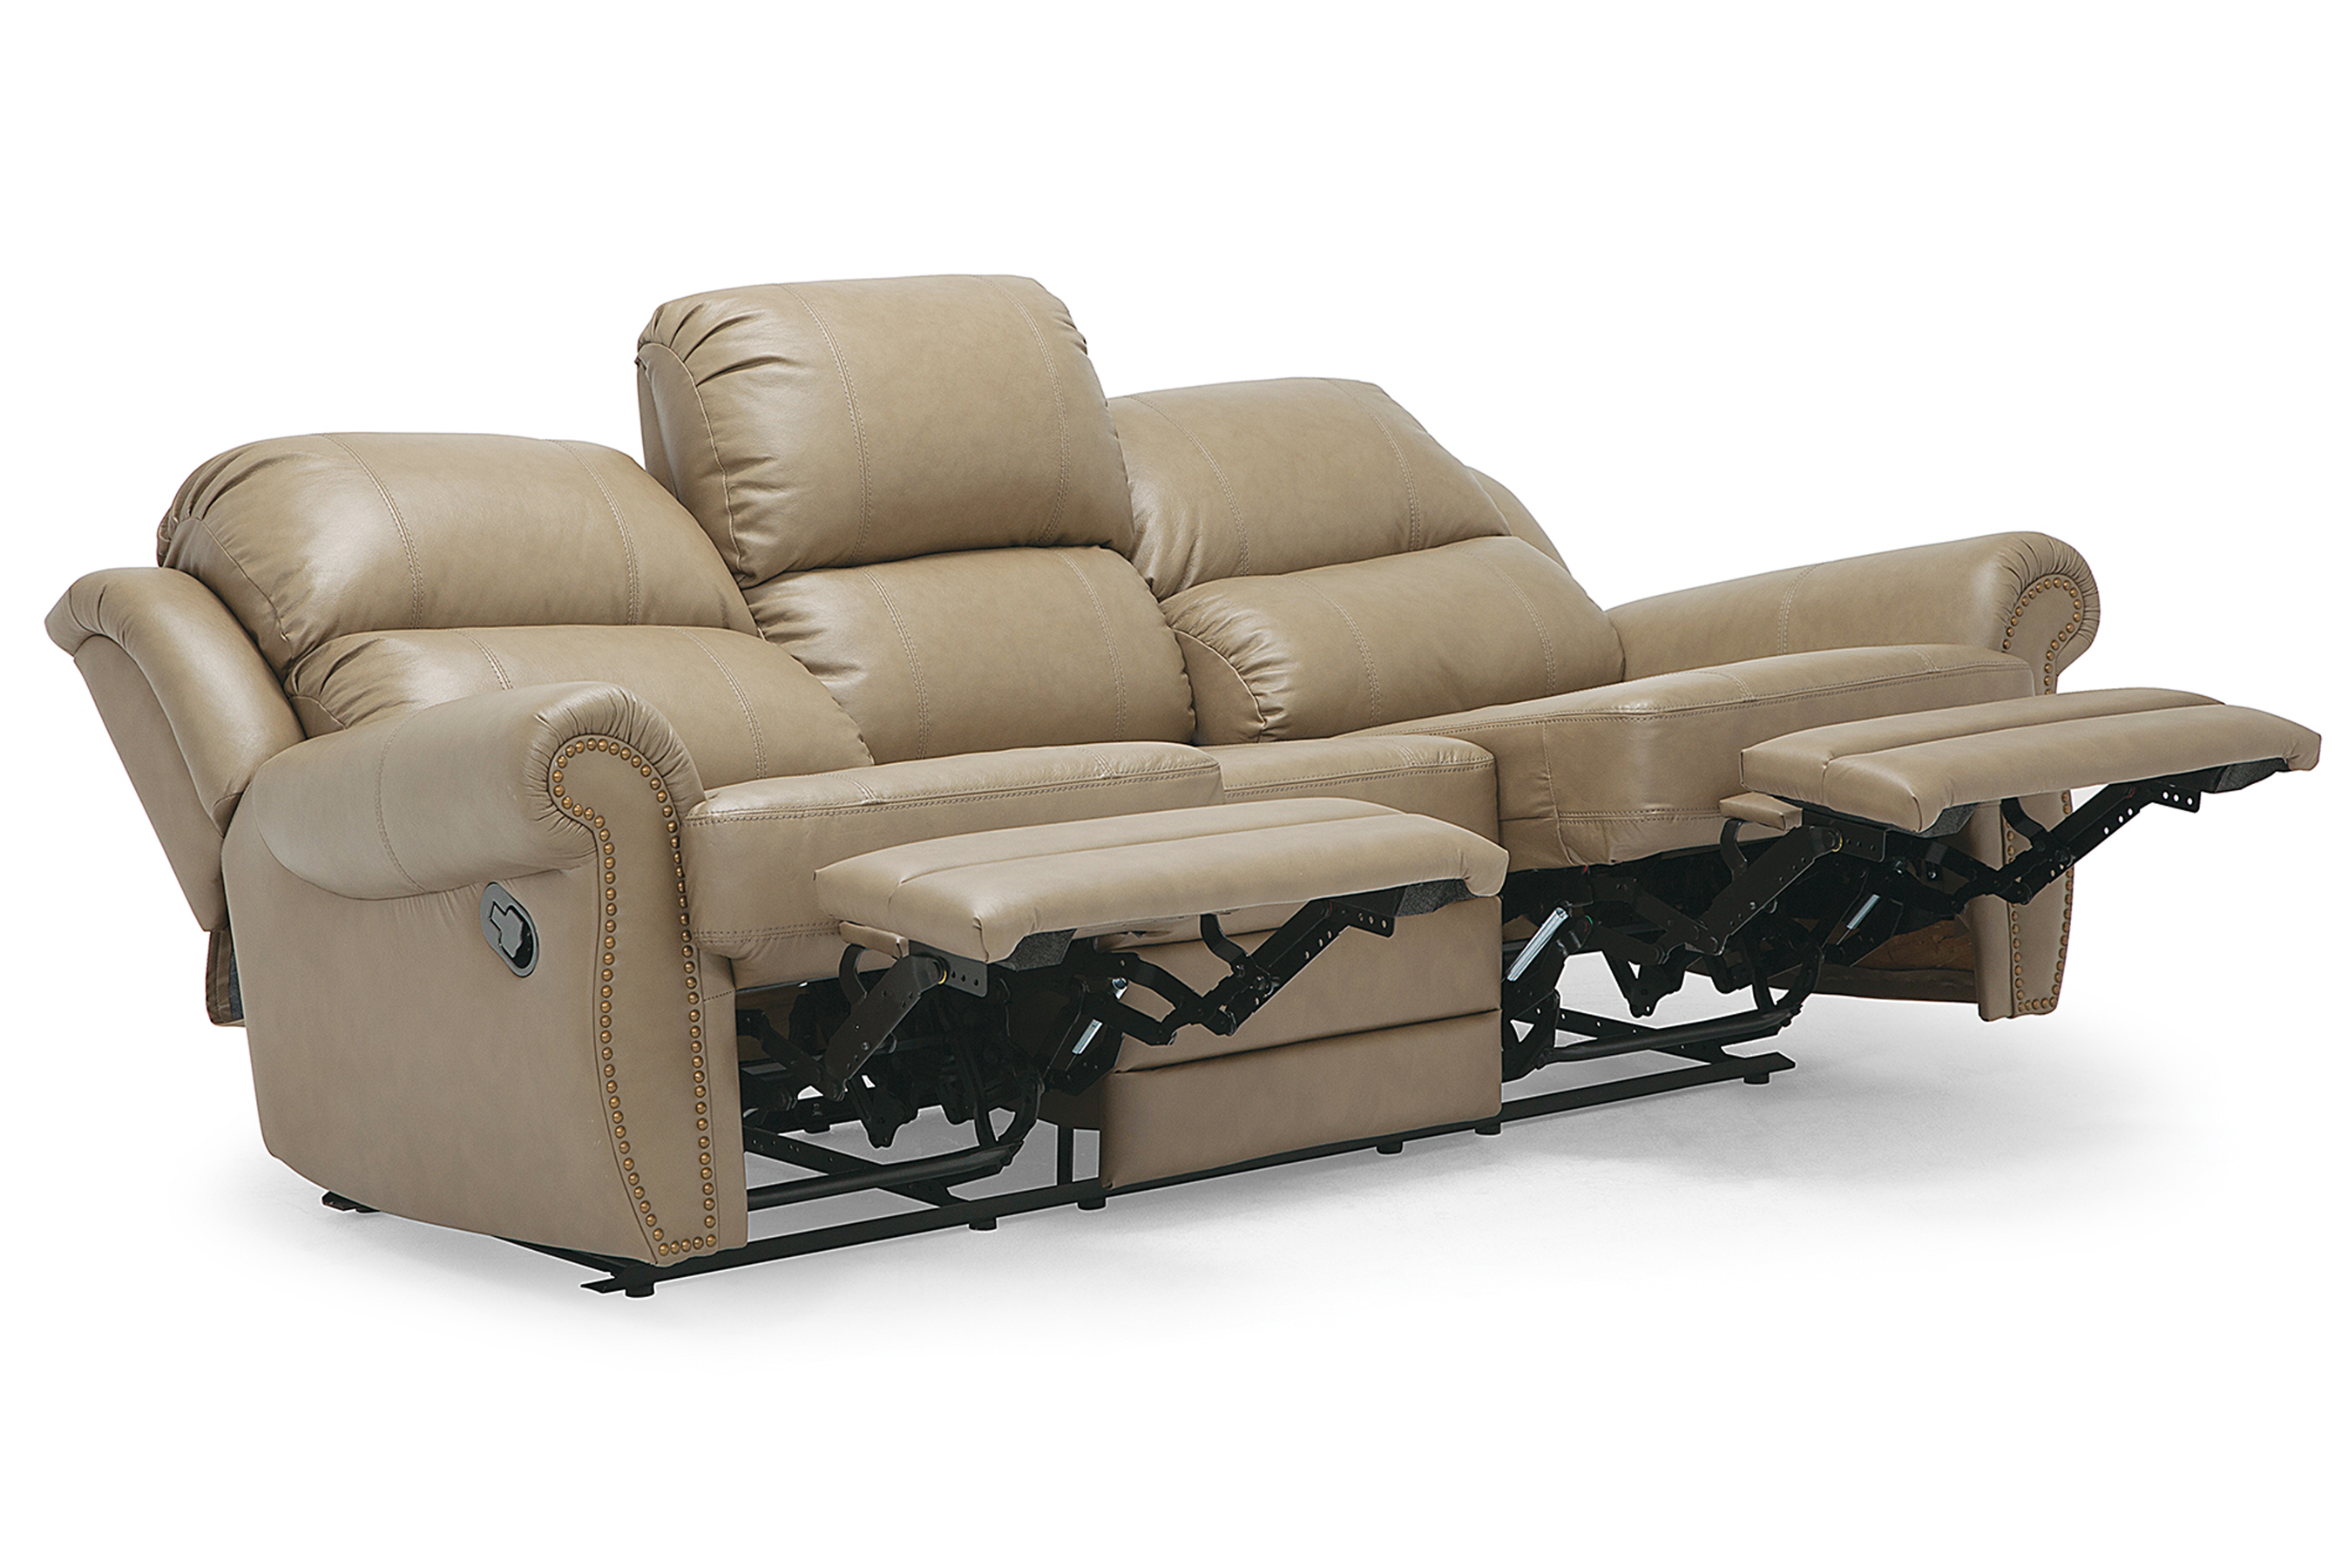 Awe Inspiring Michigan Leather Reclining Sofa Classic Sofas And Sectionals Spiritservingveterans Wood Chair Design Ideas Spiritservingveteransorg